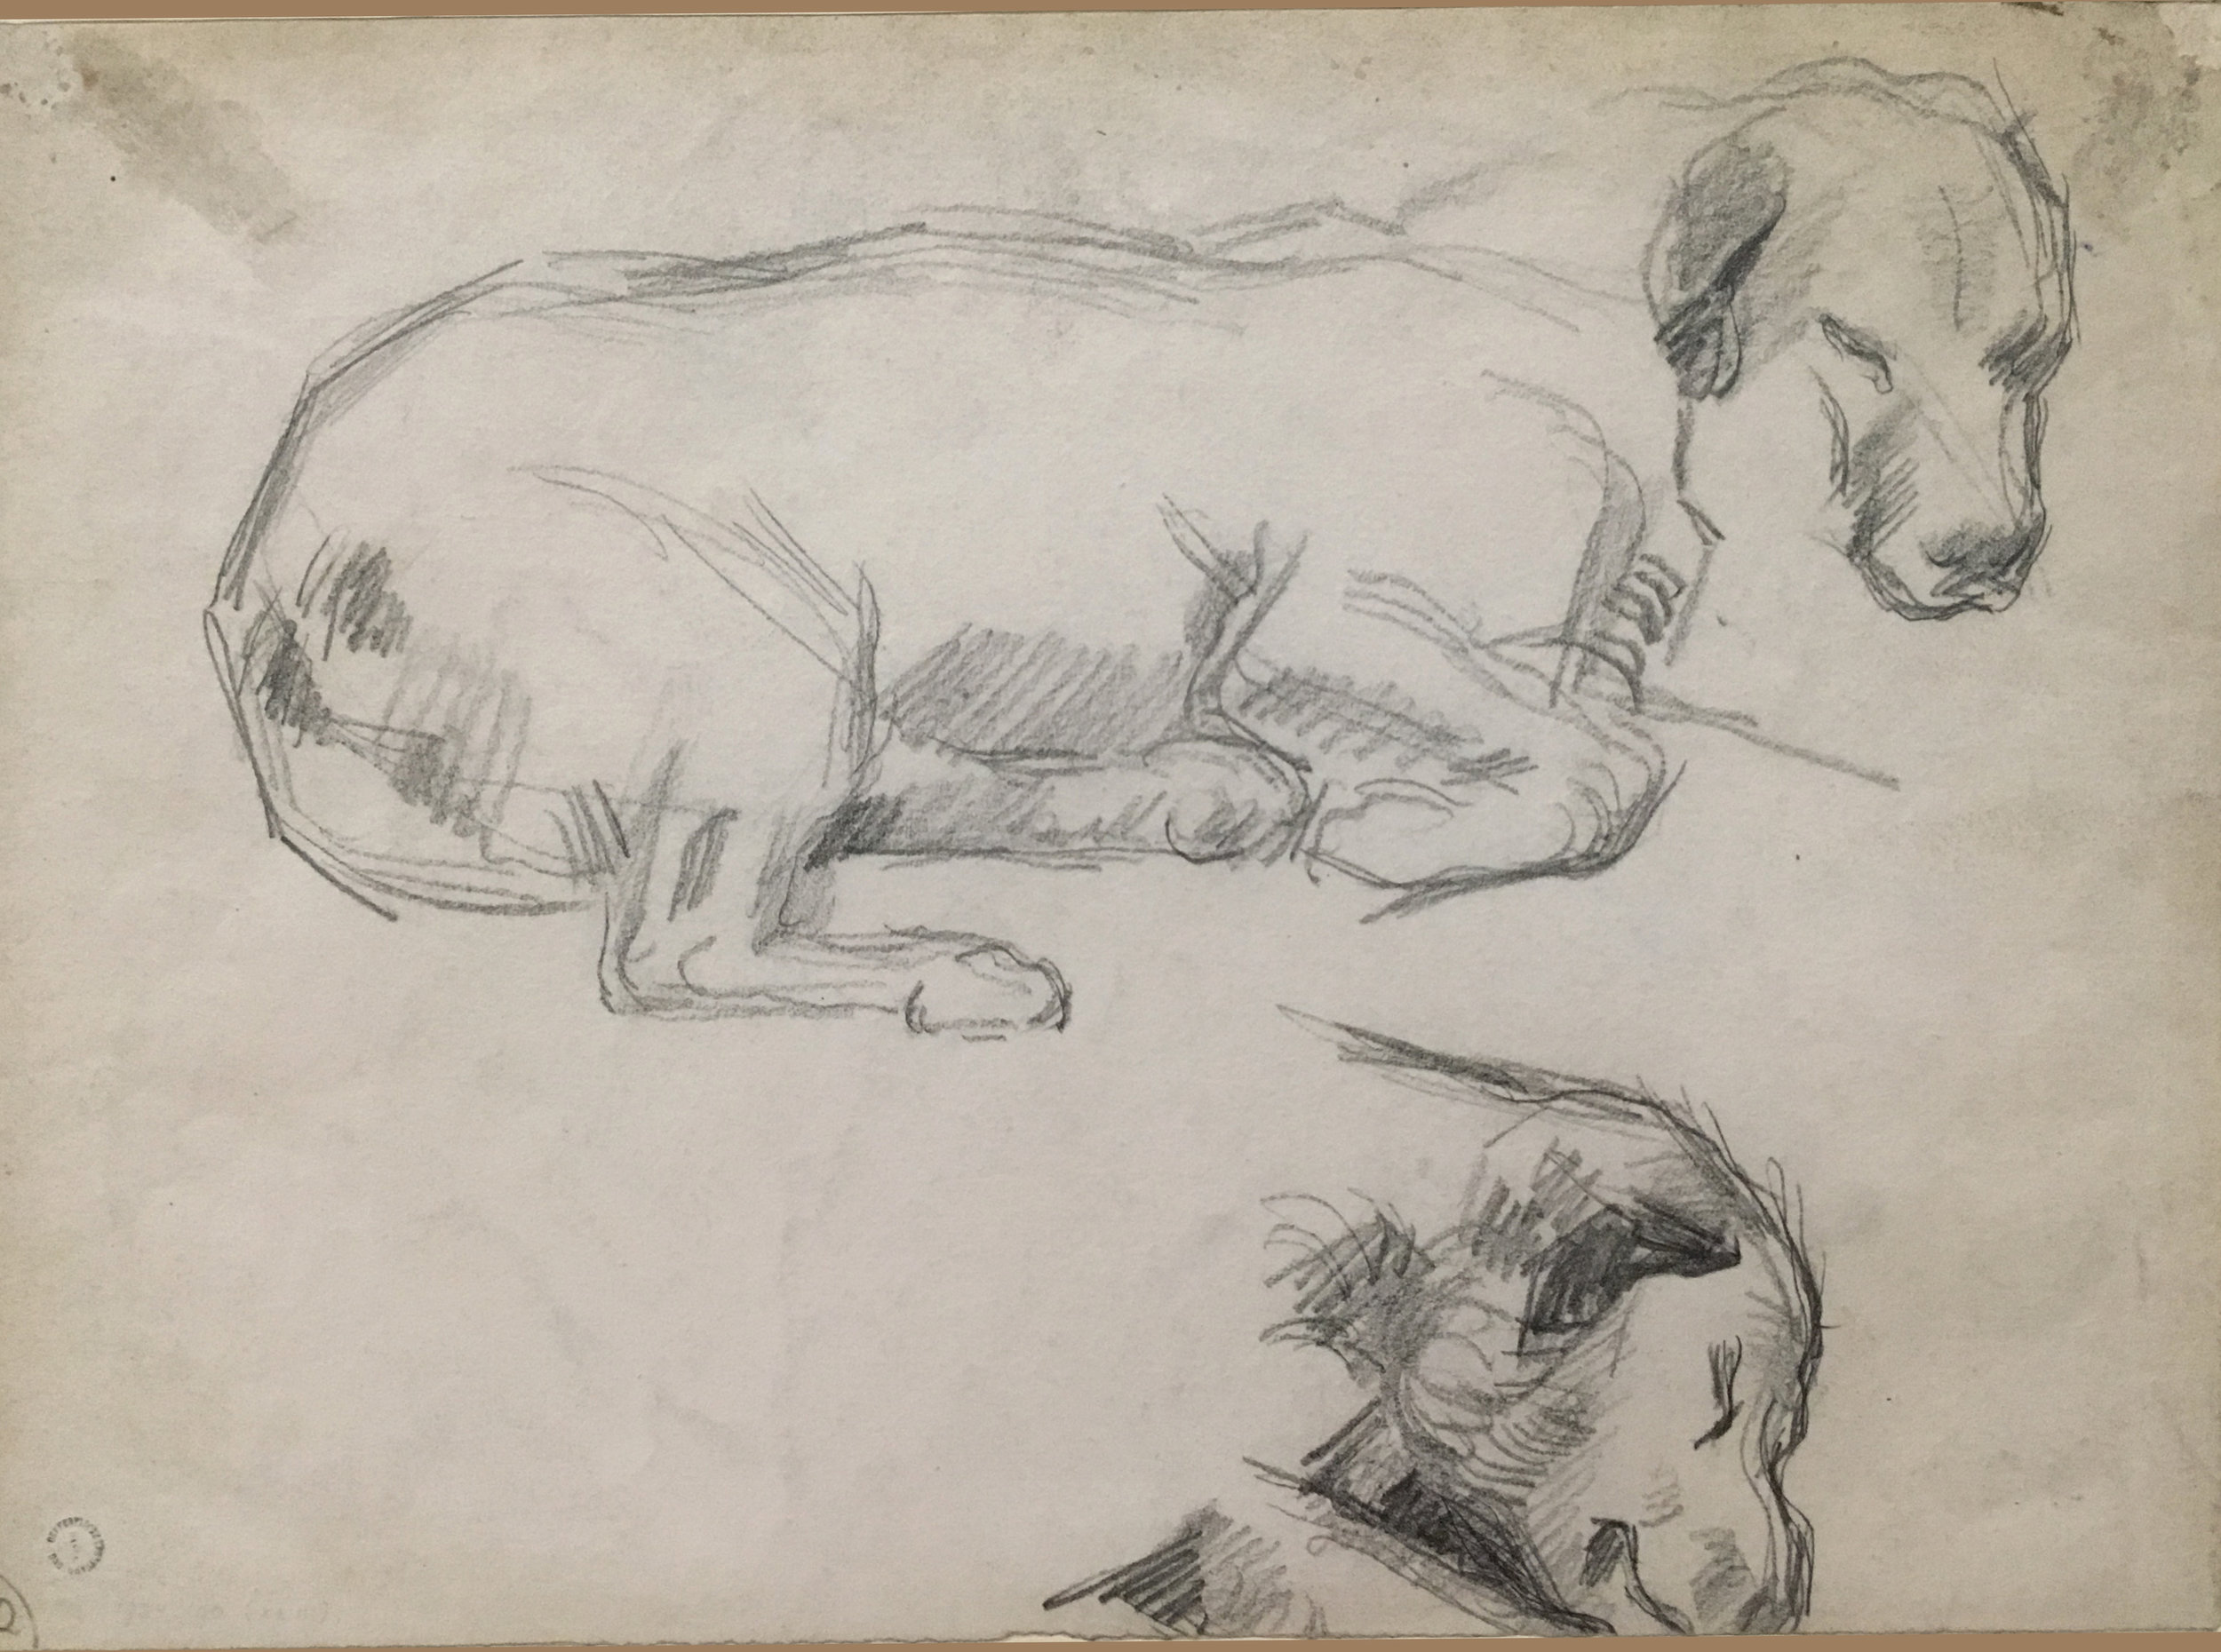 Sleeping Dog, 1876-78, pencil on paper, P. Cézanne, Kunstmuseum Basel